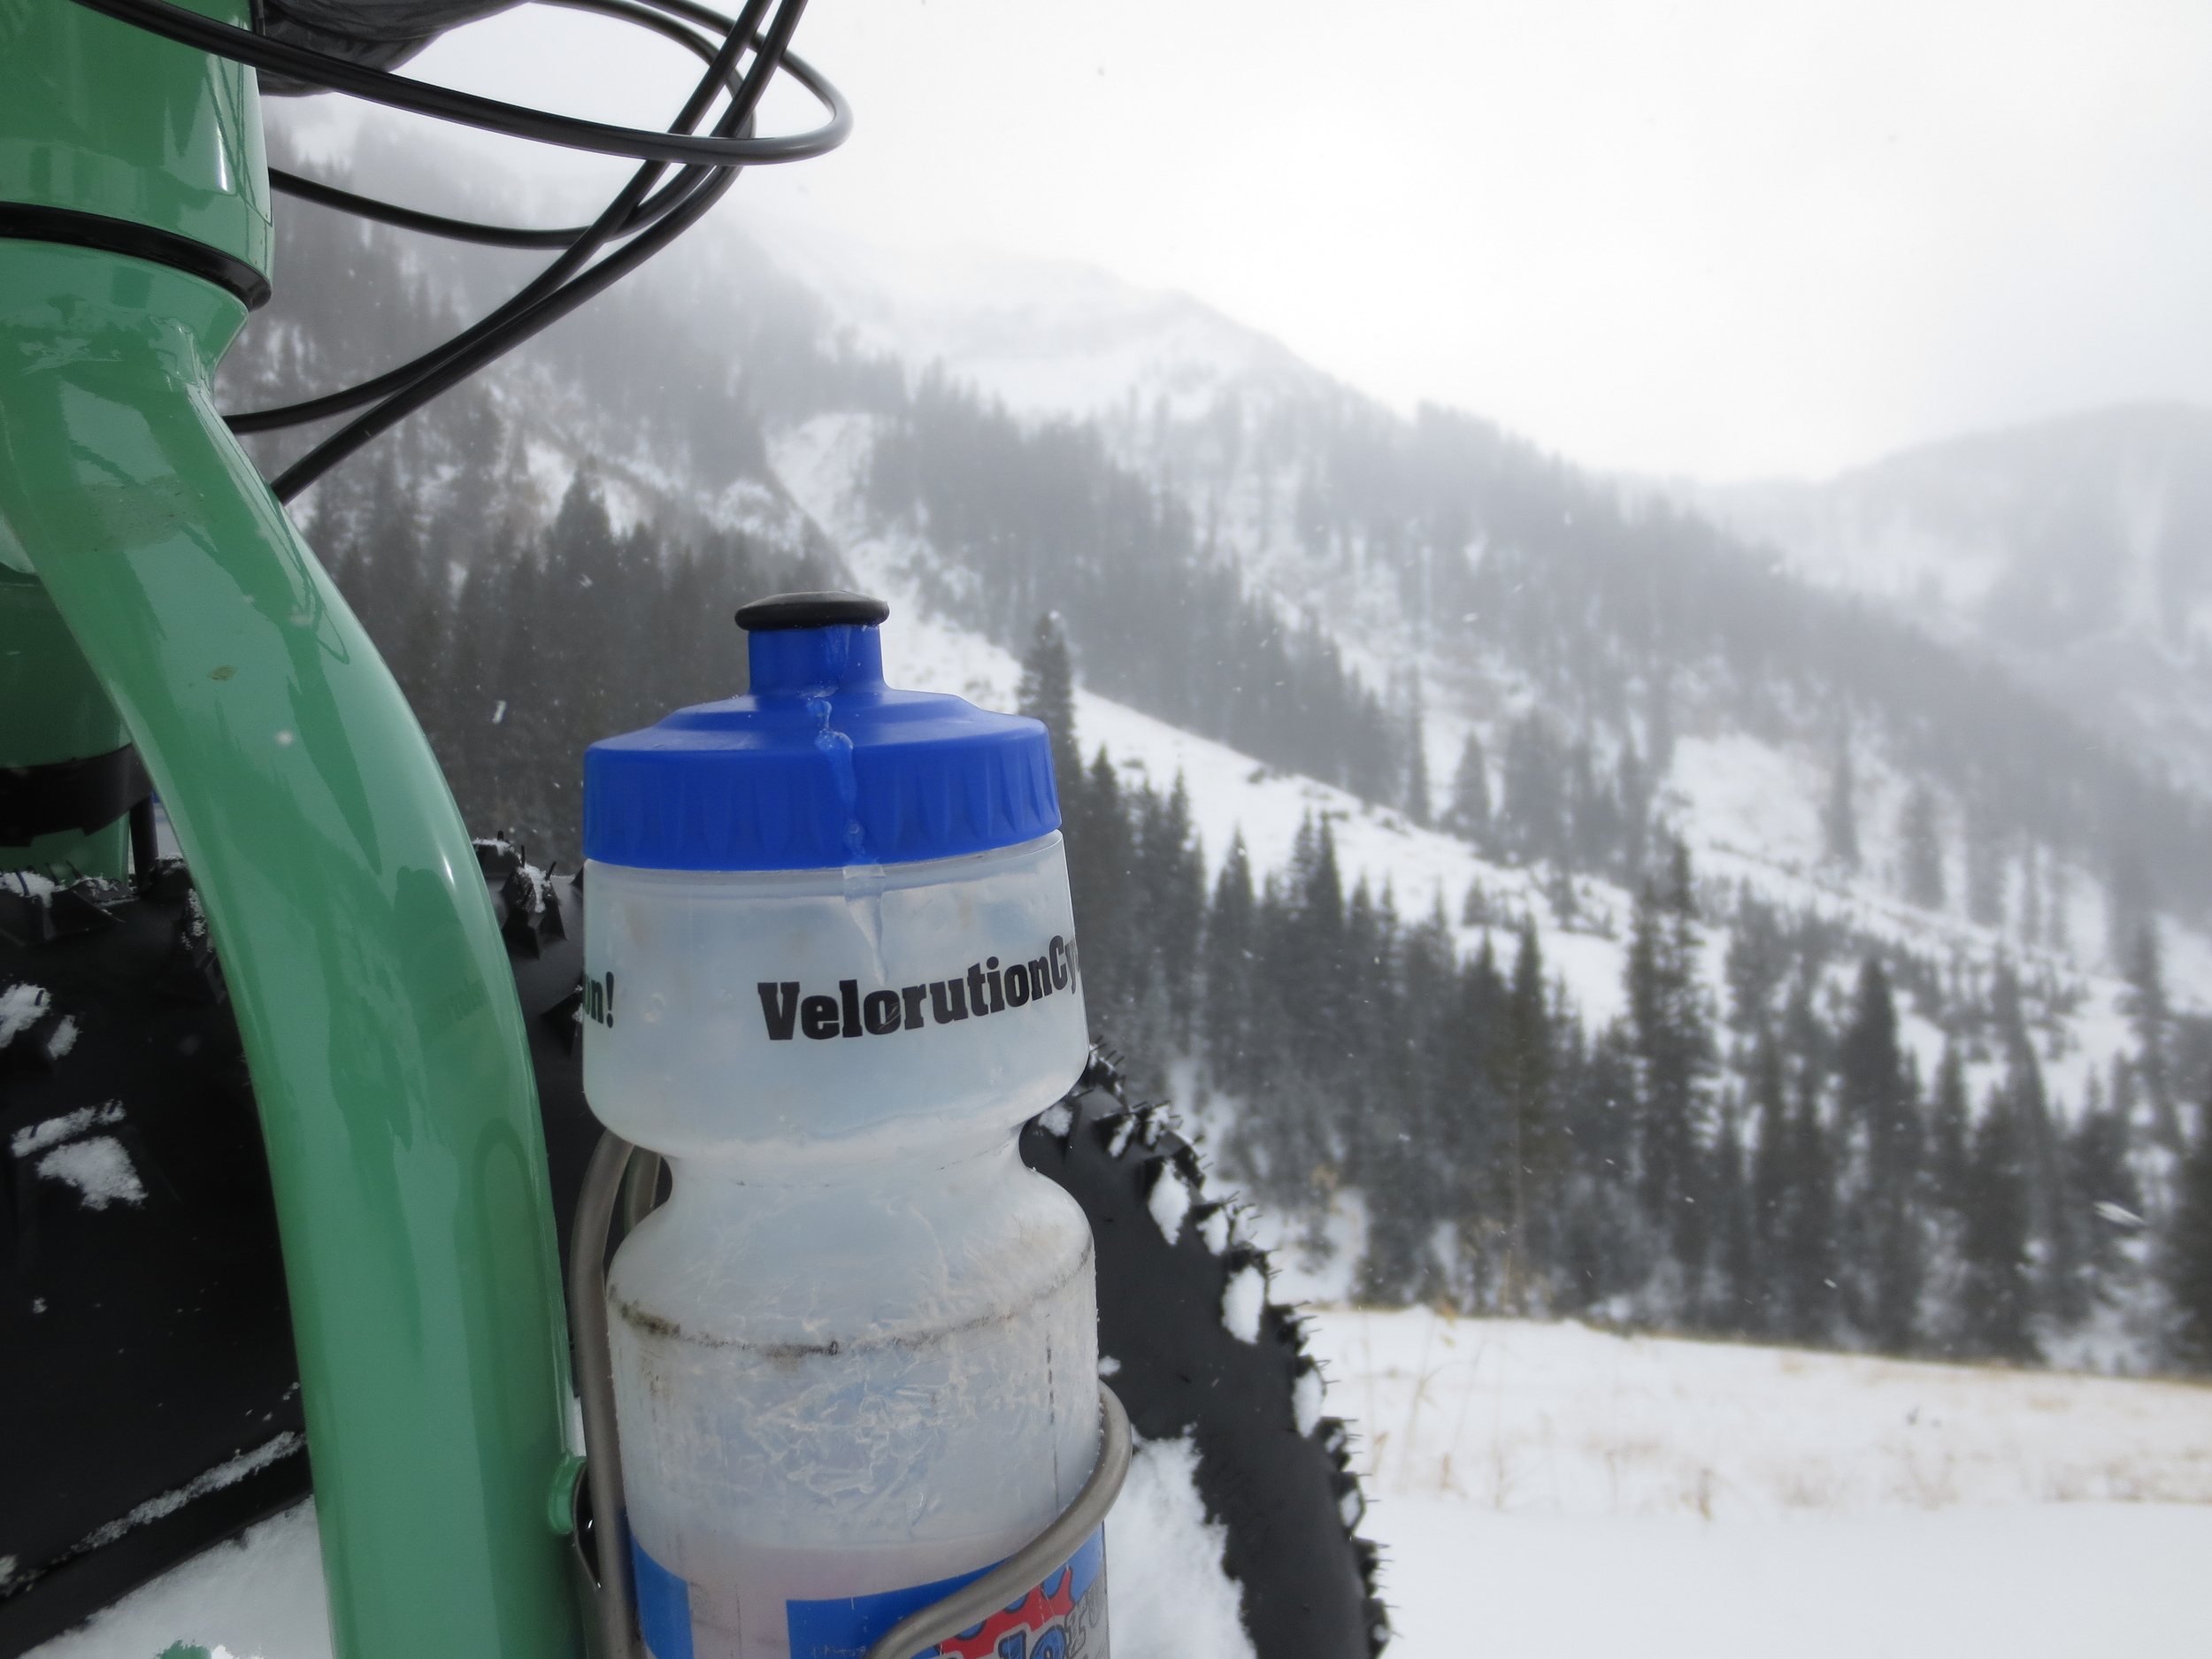 Frozen water bottles make for challenging hydration.